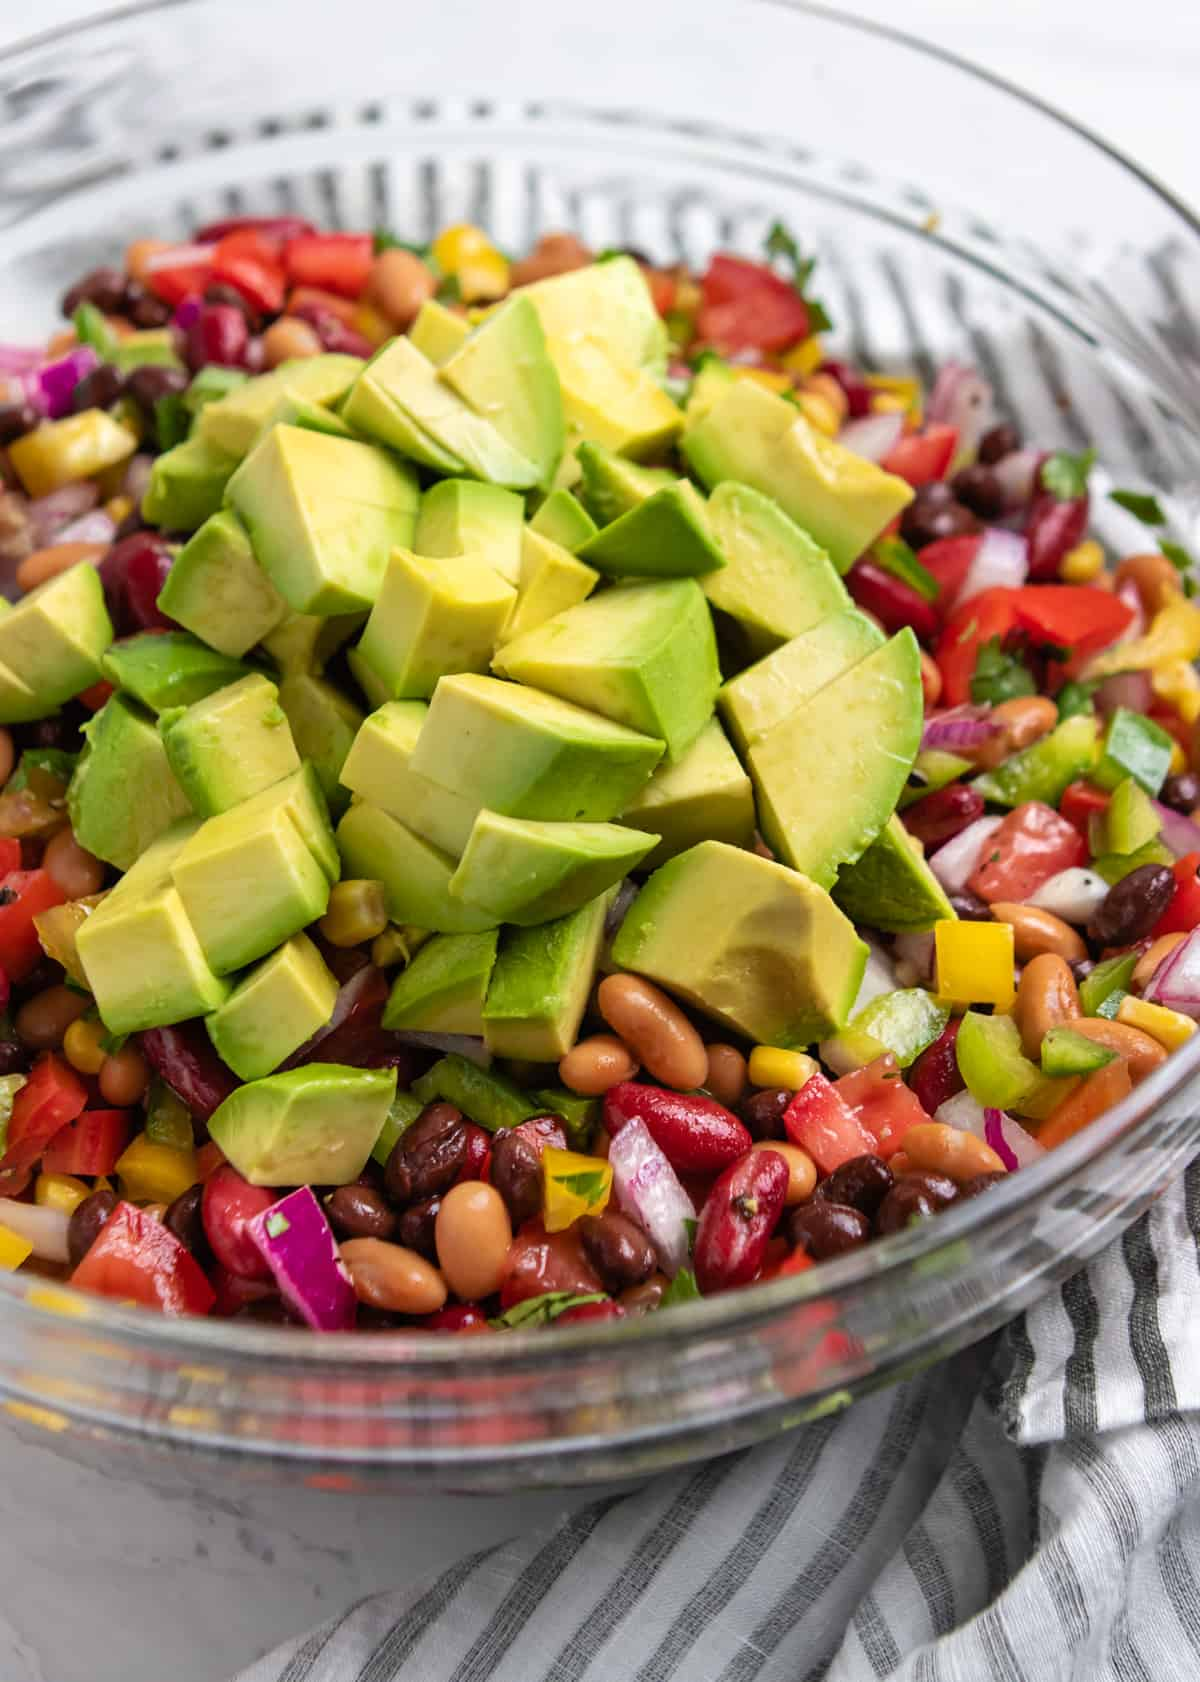 Cubed avocado on top of salad with beans, peppers and other ingredients.